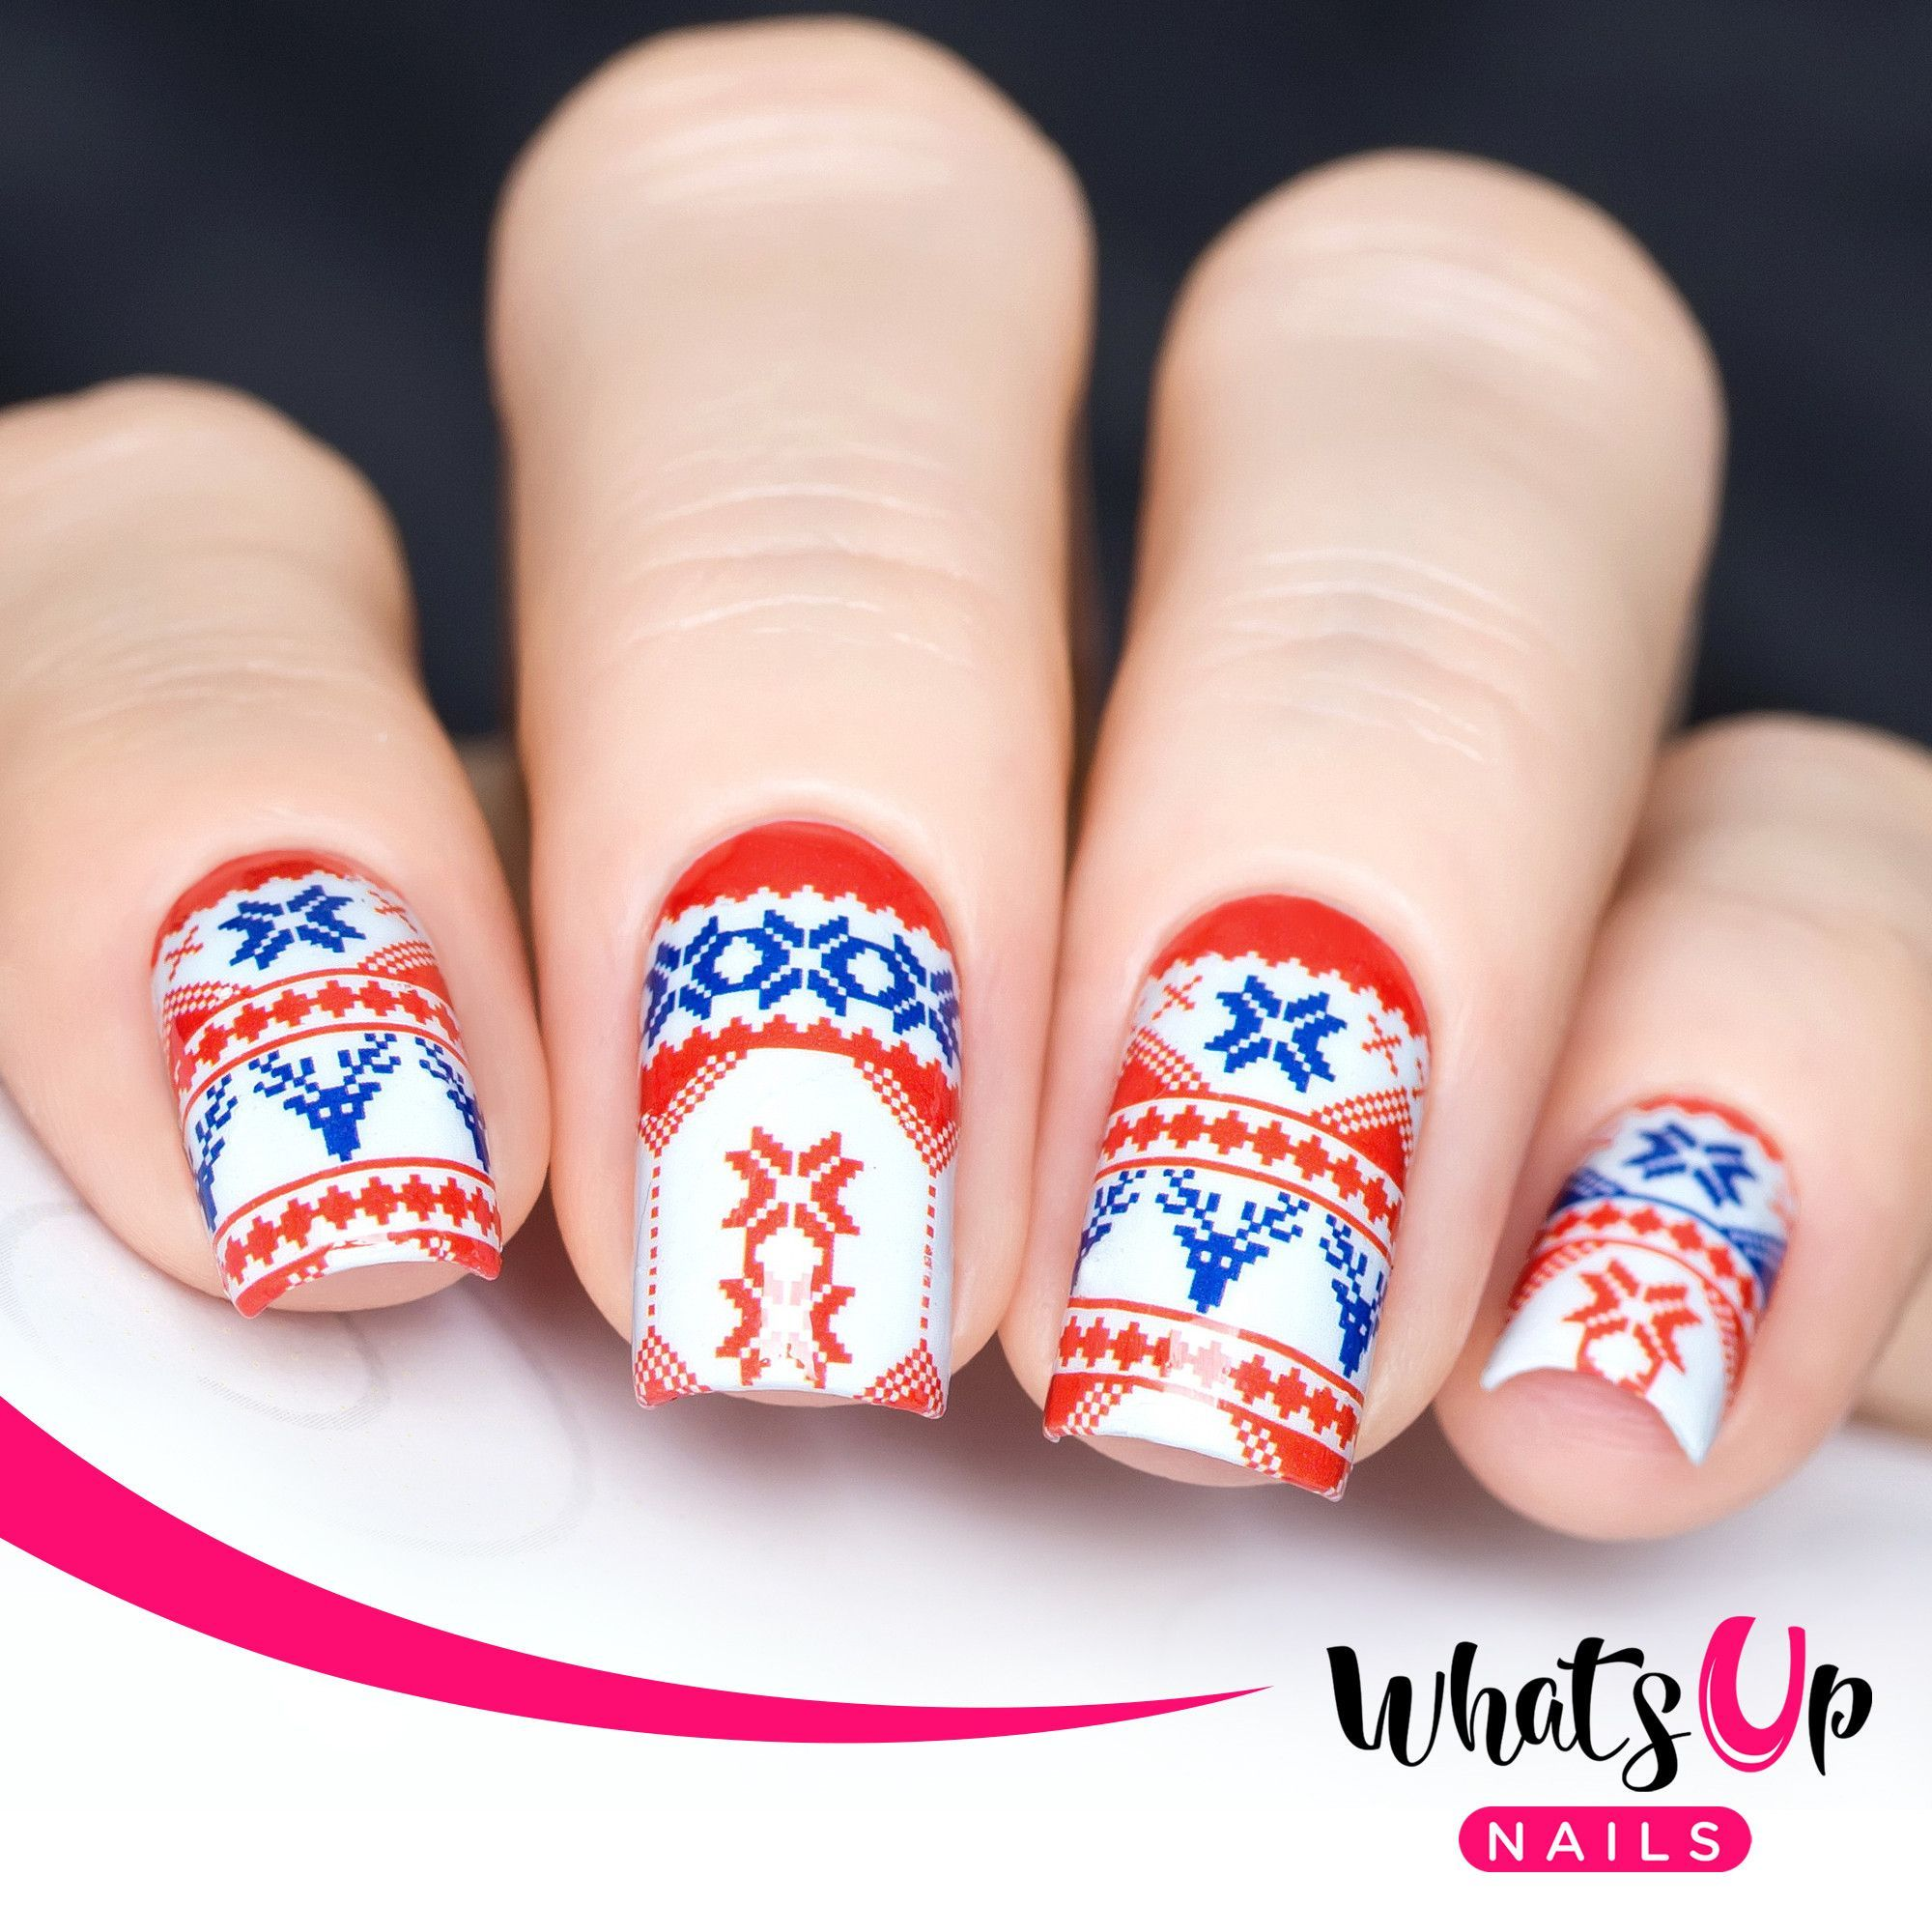 Whats Up Nails - P051 Sweater Is Better Water Decals